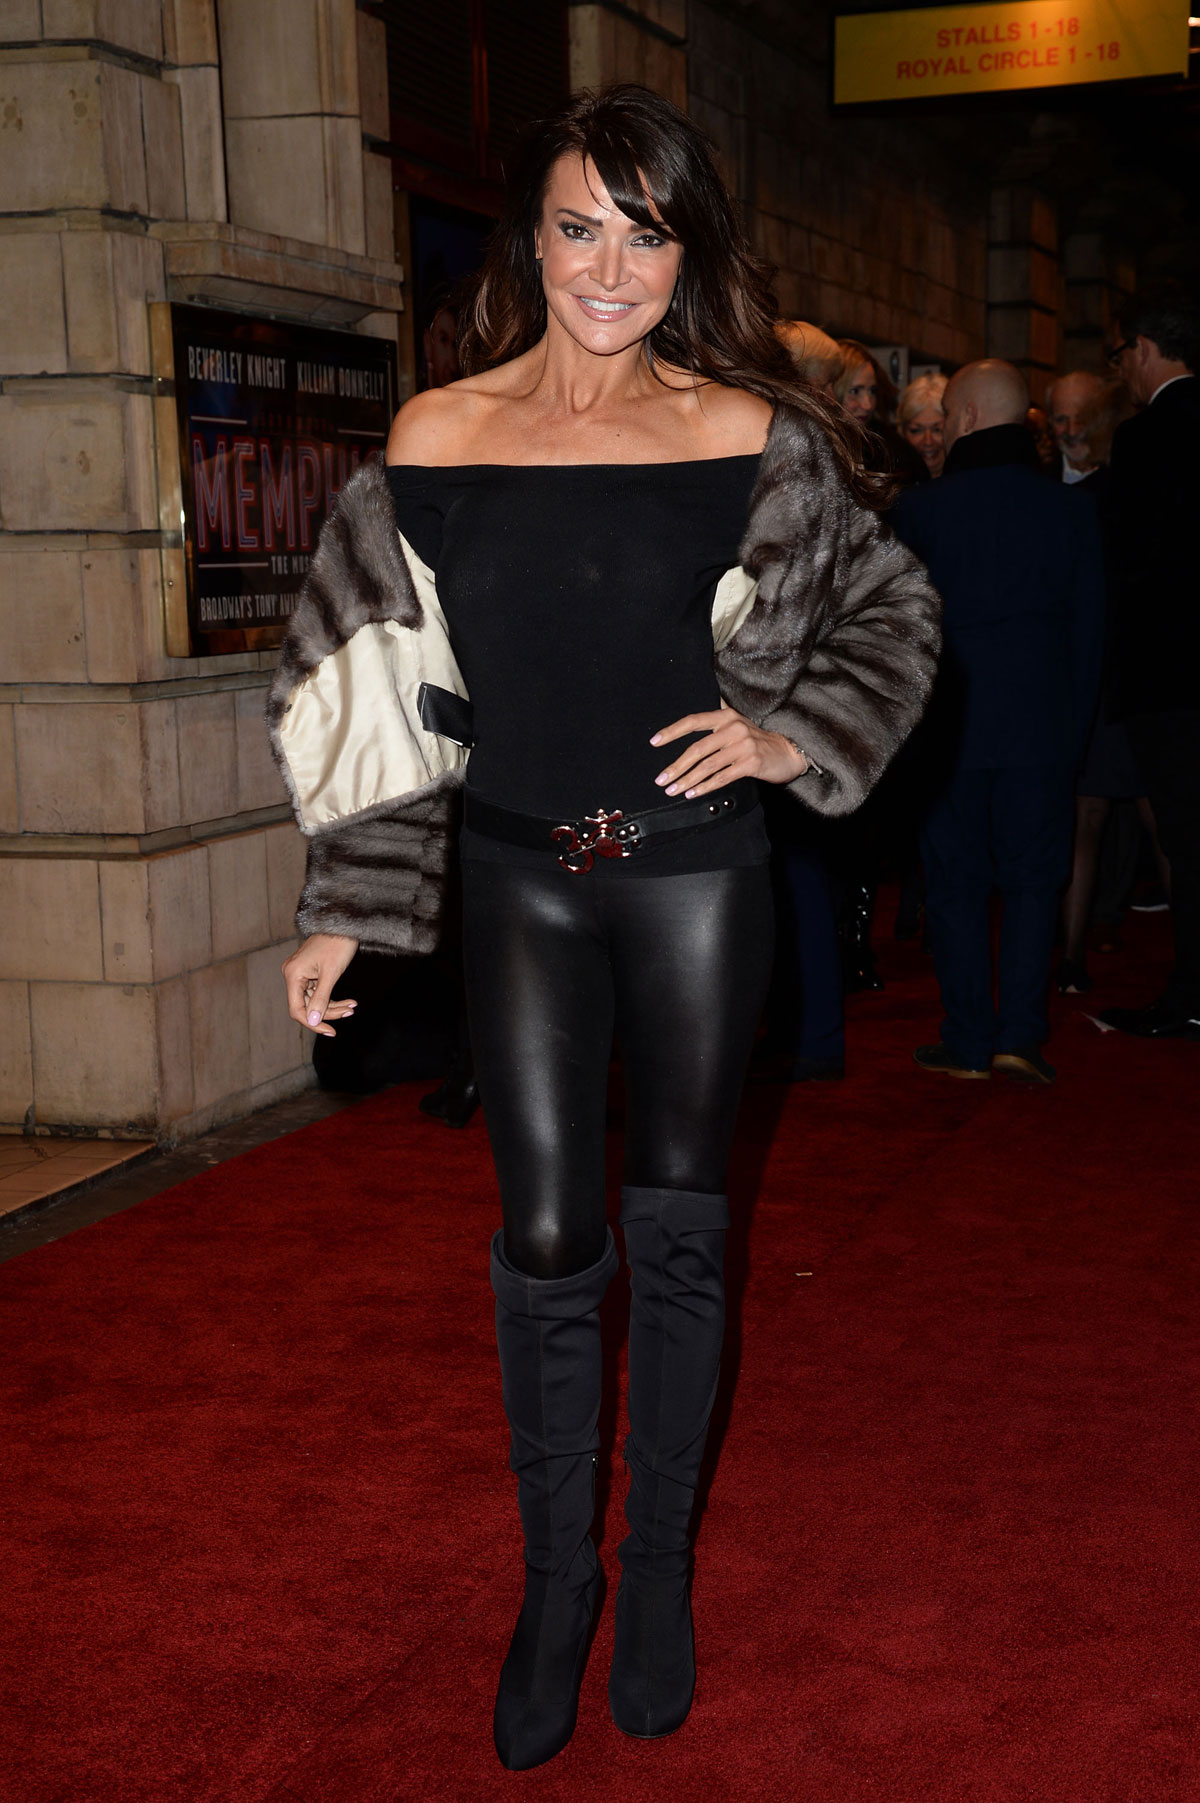 Lizzie Cundy at Memphis Press Night Arrivals